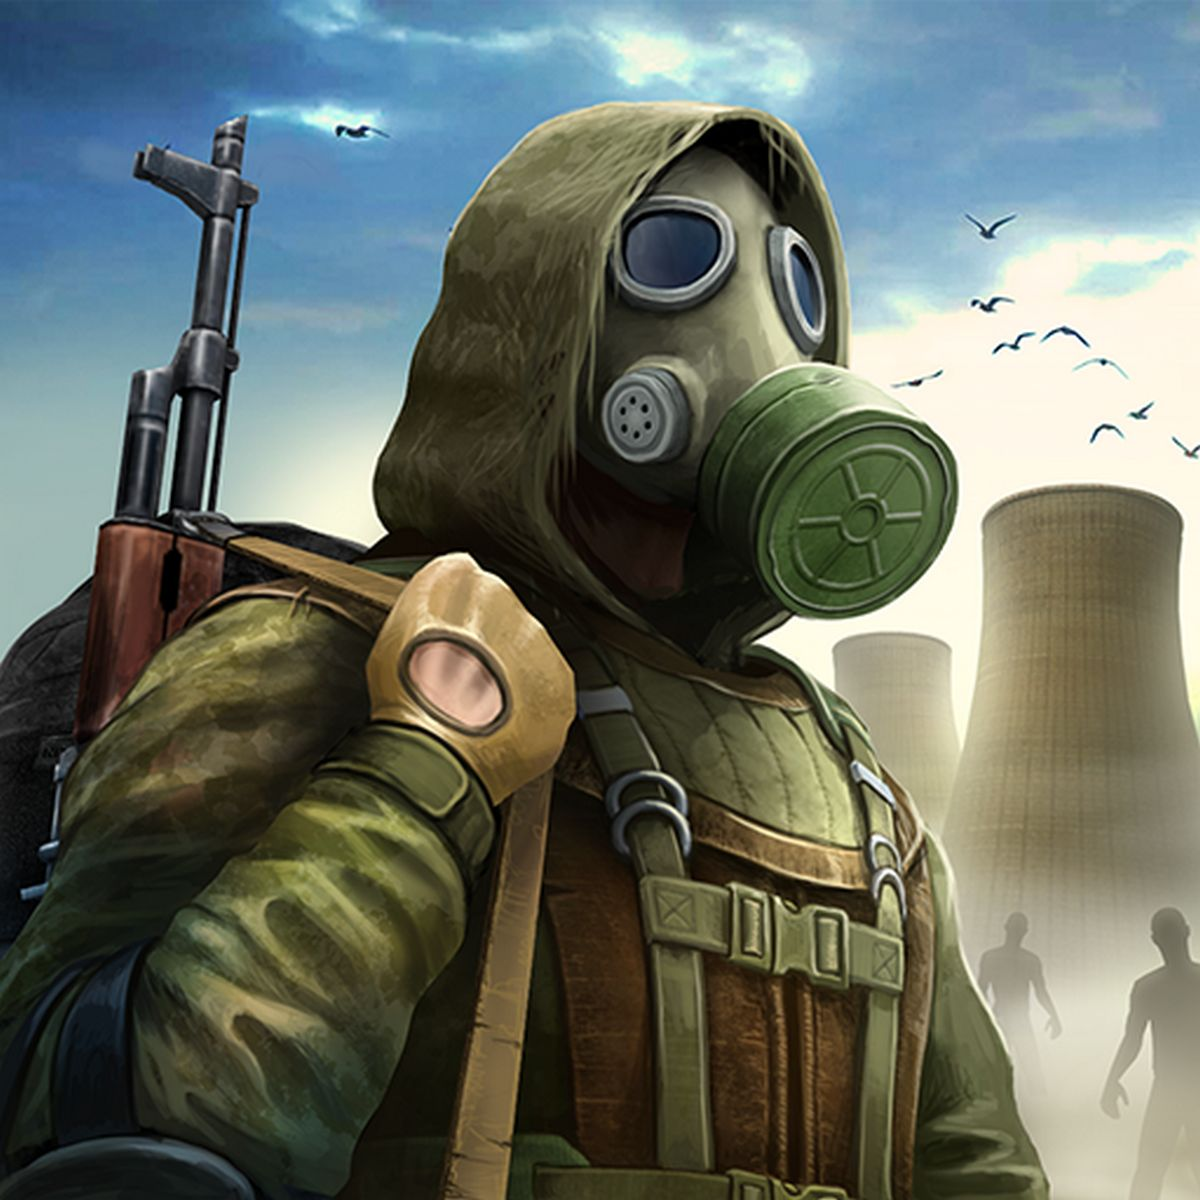 Dawn of Zombies: Survival APK MOD v2.78 (MOD MENU), Cloud Pocket 365